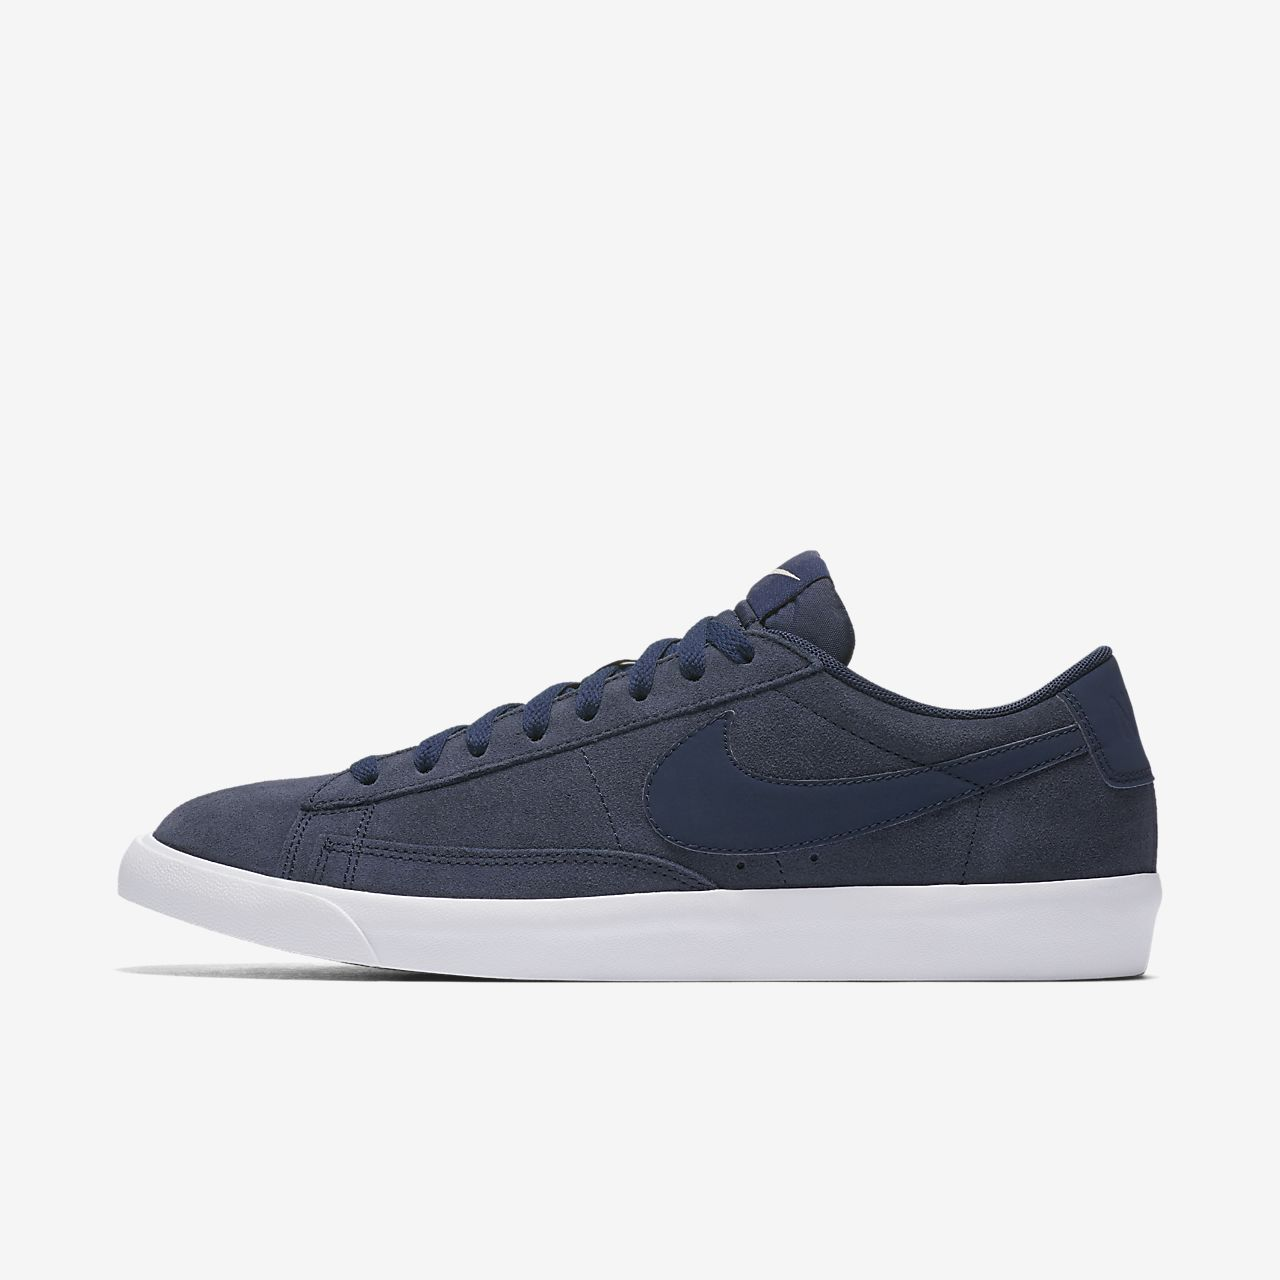 ... Chaussure Nike Blazer Low pour Homme